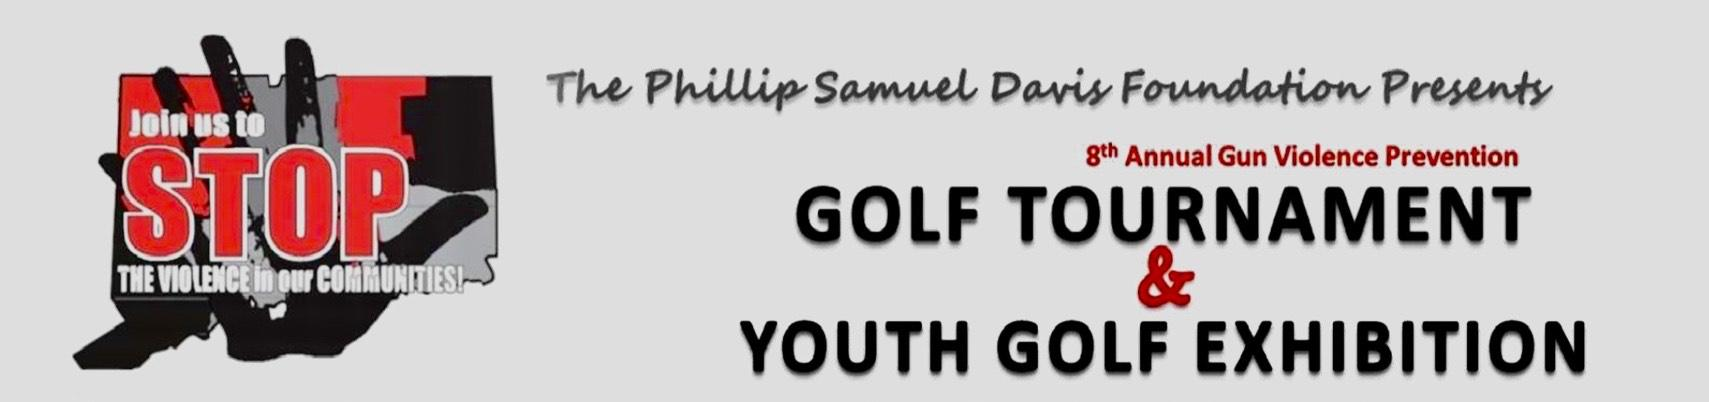 Stop the Violence Golf Tournament & Youth Golf Exhibition